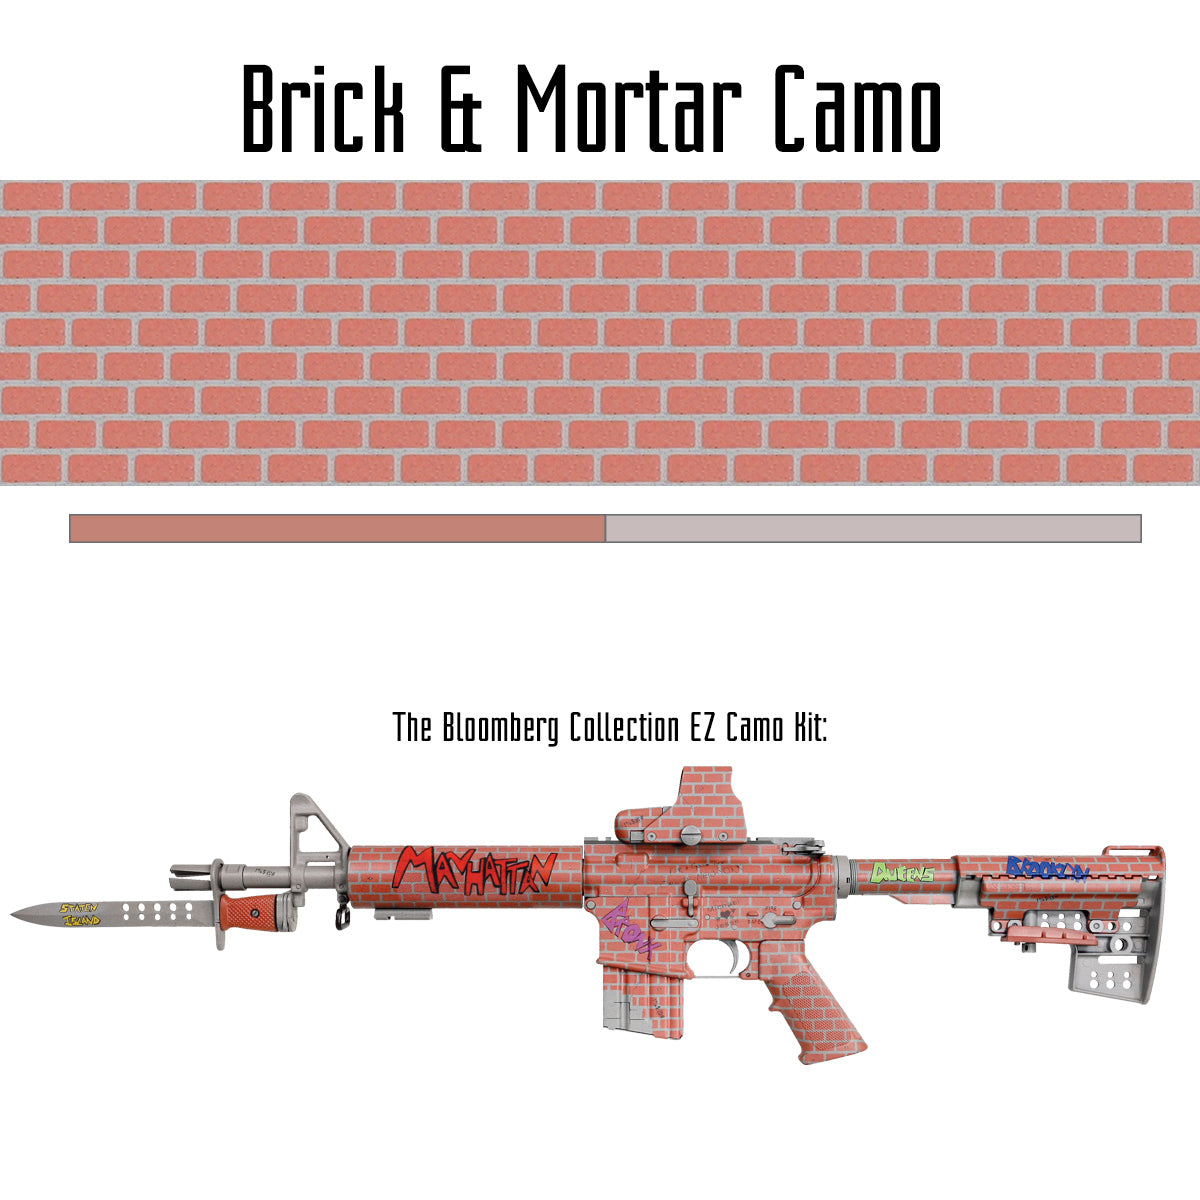 Brick & Mortar Camo Kits